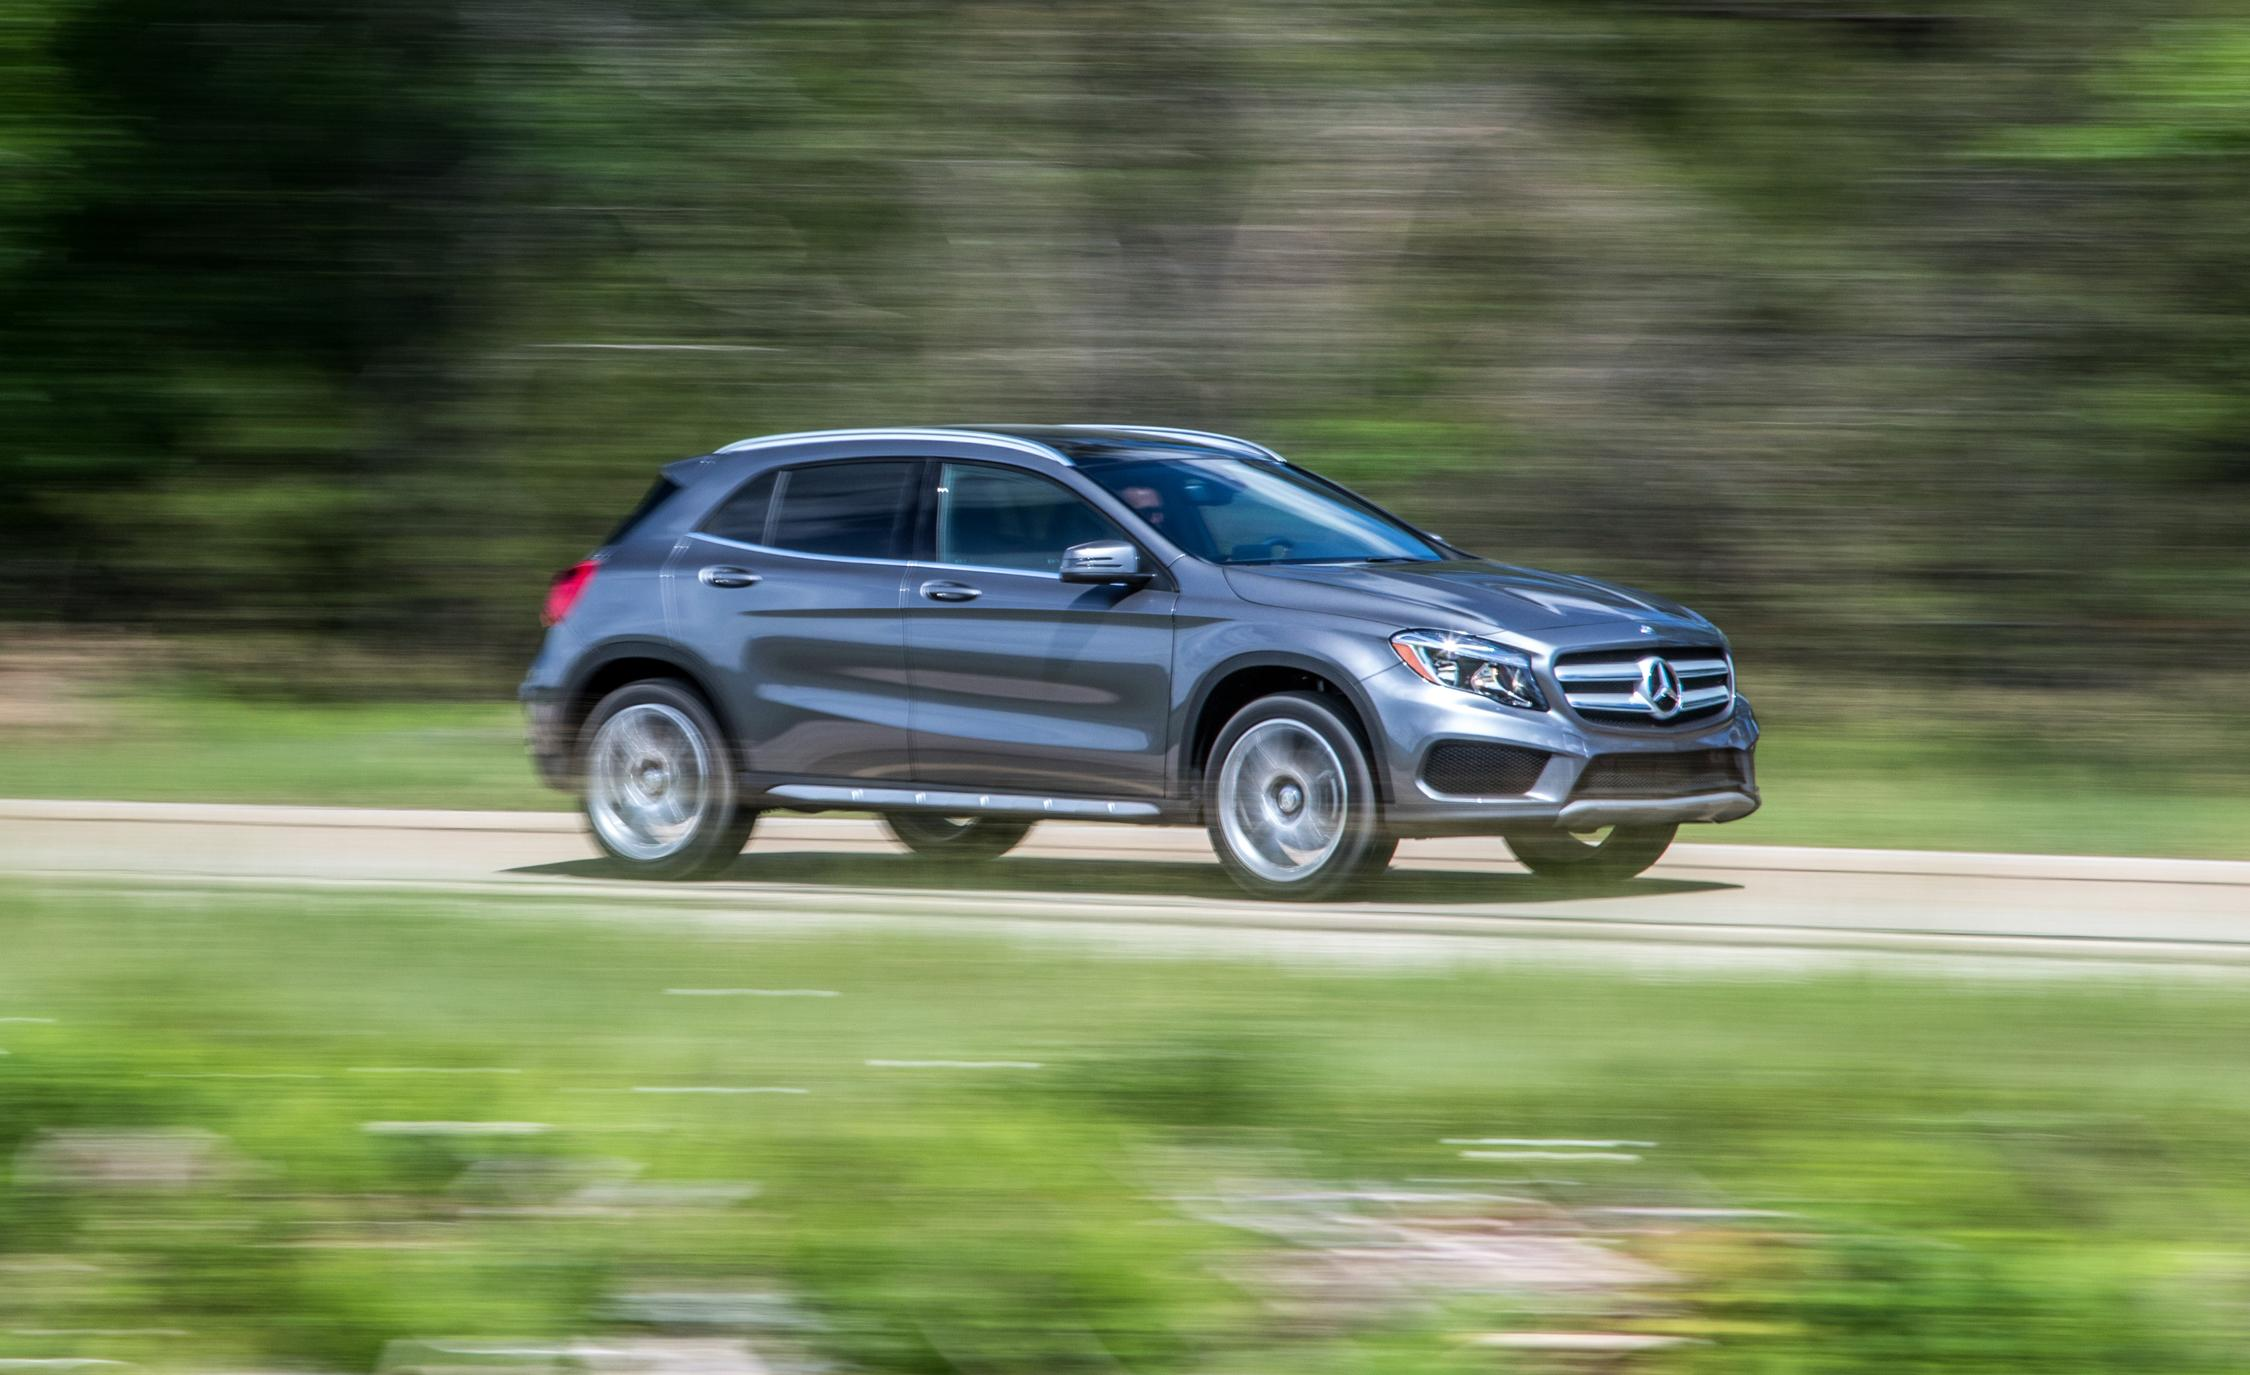 2017 mercedes benz gla class. Black Bedroom Furniture Sets. Home Design Ideas